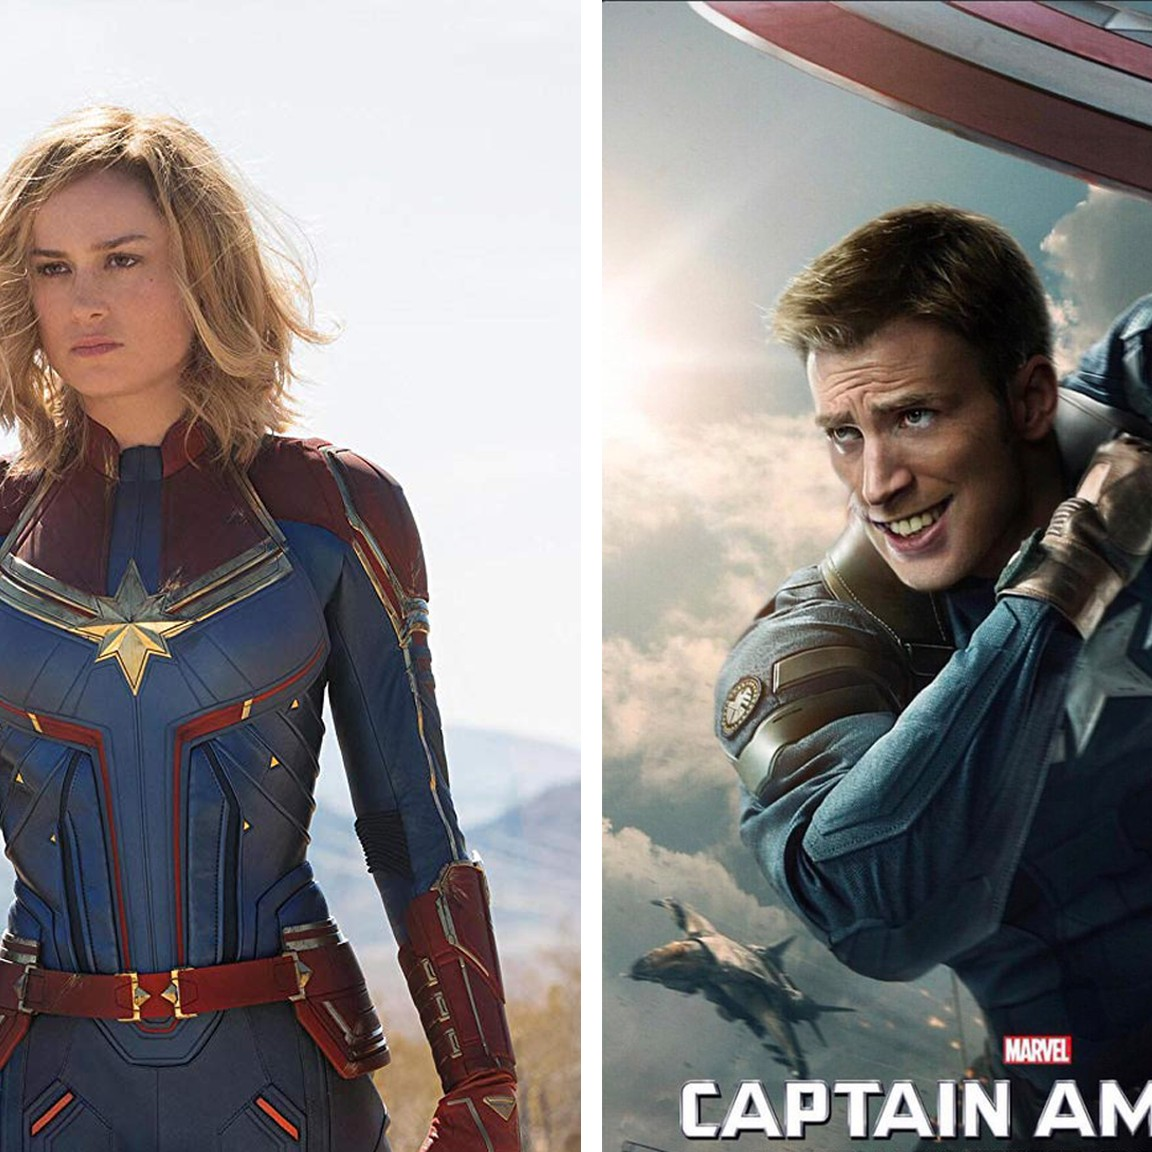 Brie Larson Was Told To Smile In Captain Marvel So She Put Smiles Onto Marvel Dudes Deviantart is the world's largest online social community for artists and art enthusiasts, allowing people to connect here is my tribute to captain marvel, carol danvers as written by kelly sue deconnick. brie larson was told to smile in